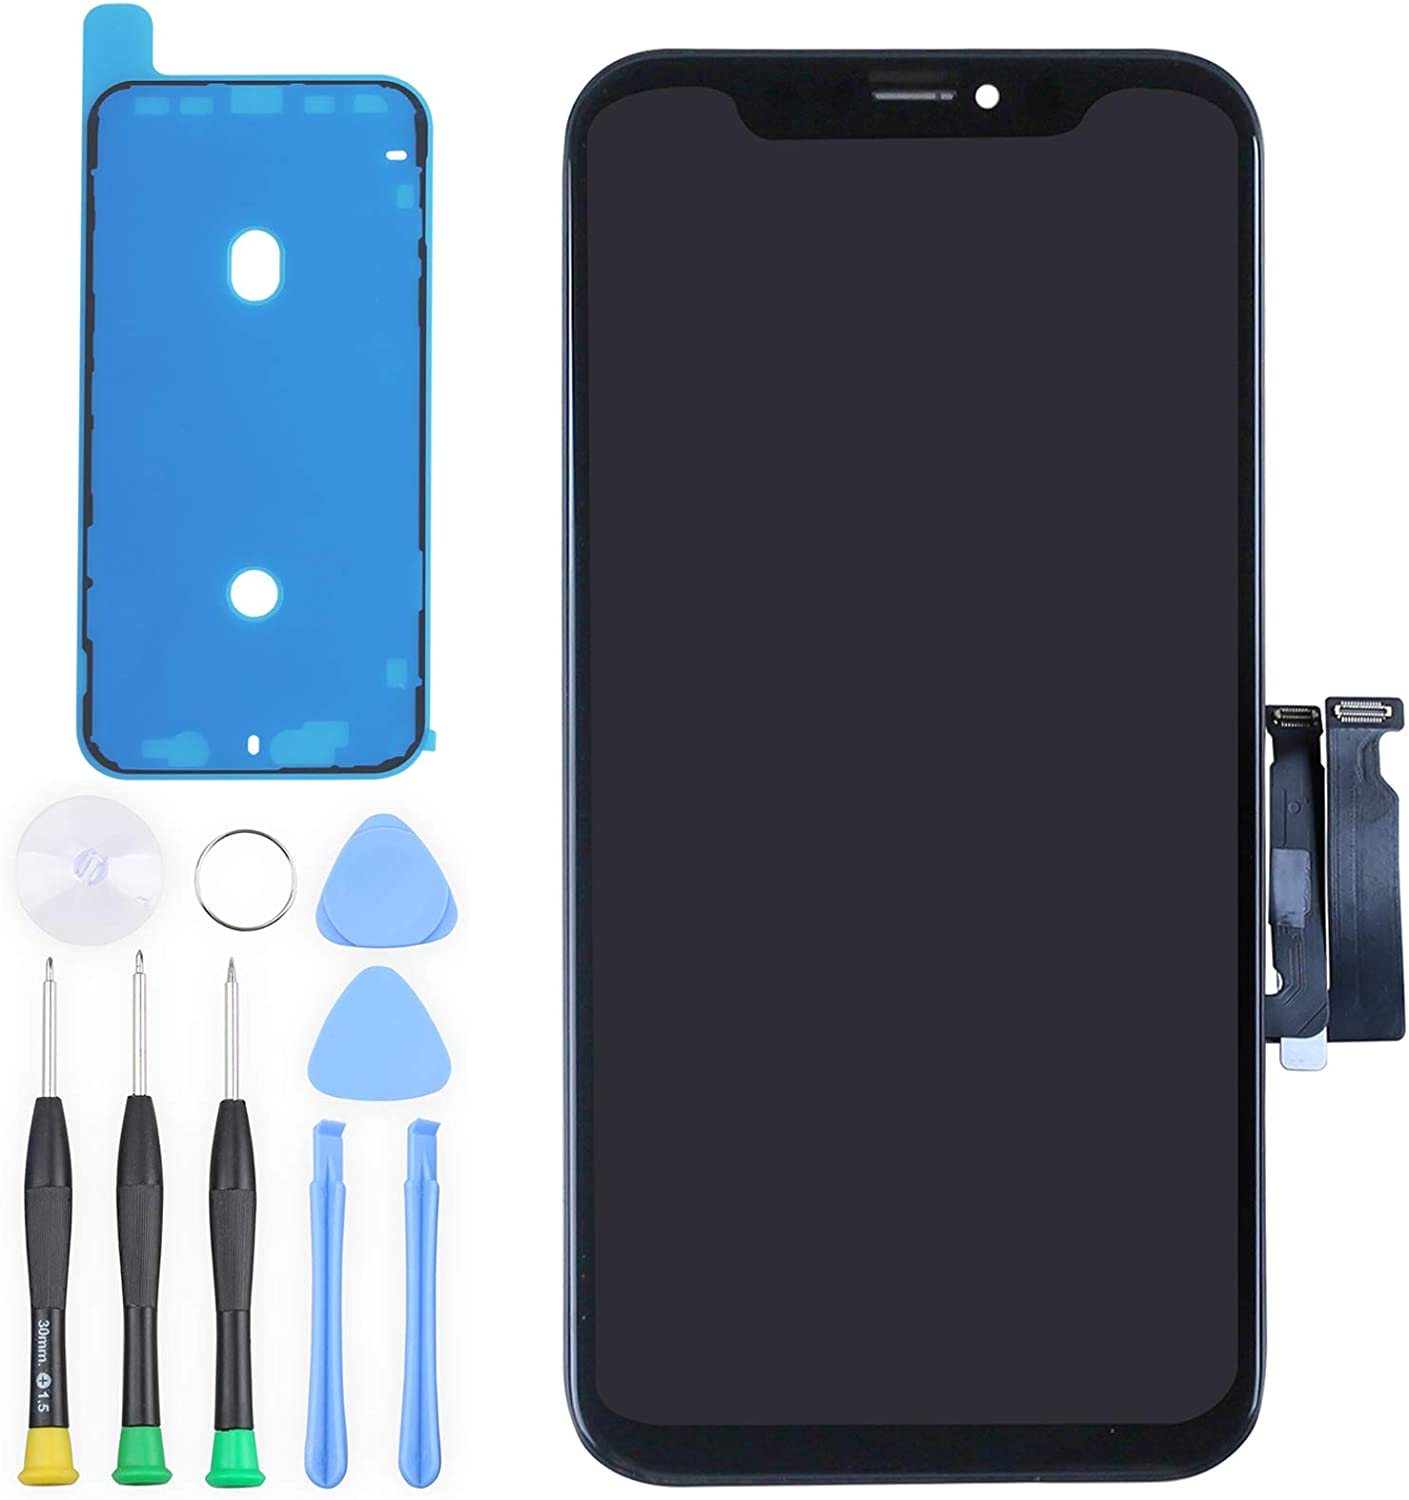 """for iPhone XR Digitizer Screen Replacement - Ayake 6.1"""" LCD Display Touch Screen Assembly with All Repair Tool Kits Compatible Models A1984, A2105, A2106, A2108"""